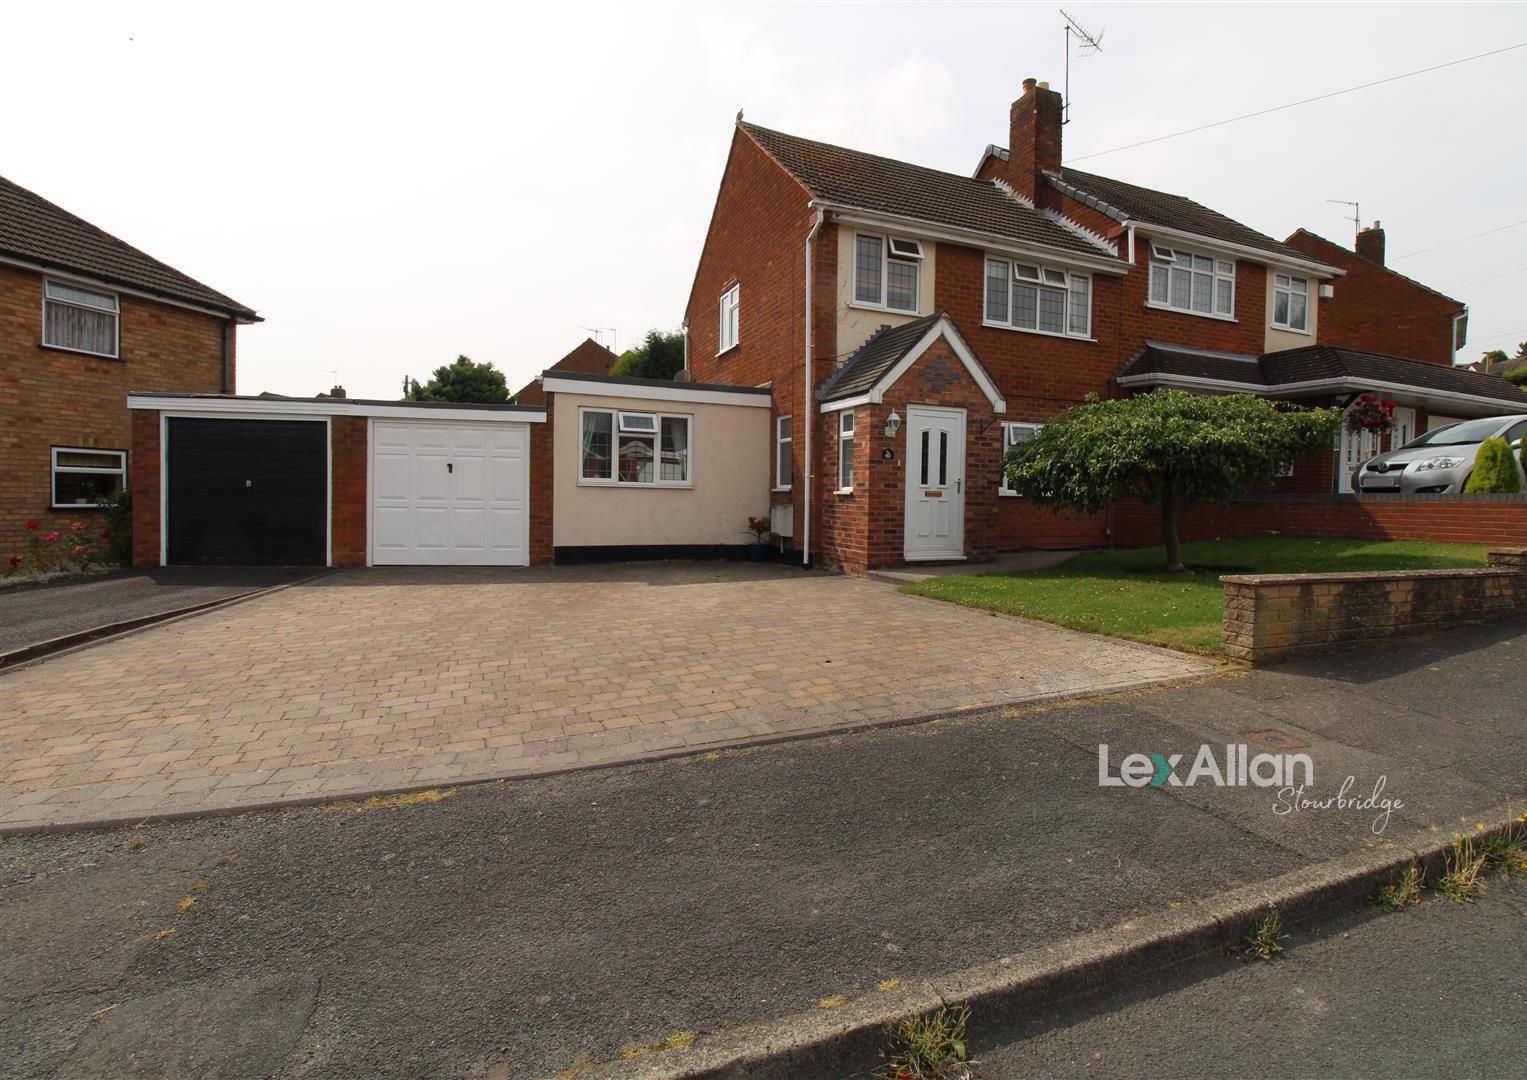 3 bed semi-detached for sale in The Straits, DY3